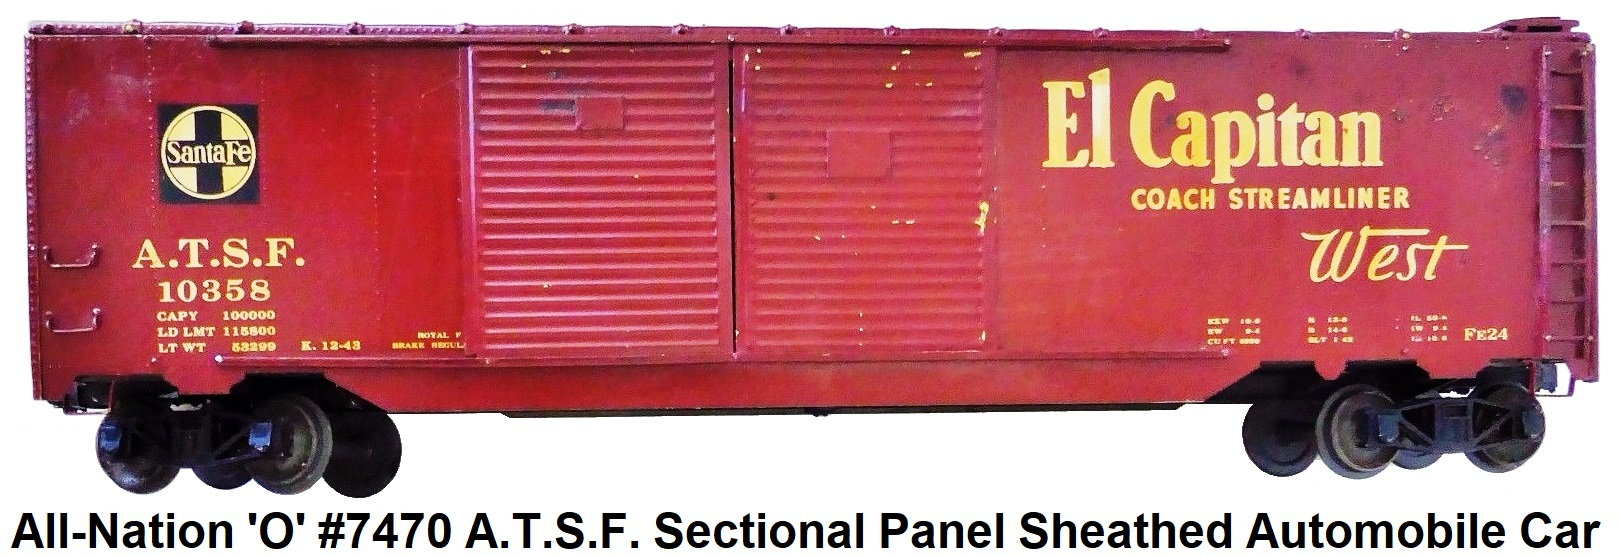 All-Nation 'O' scale Kit-built 2-rail A.T.S.F. El Capitan #10358 Sectional Panel Sheathed Automobile car